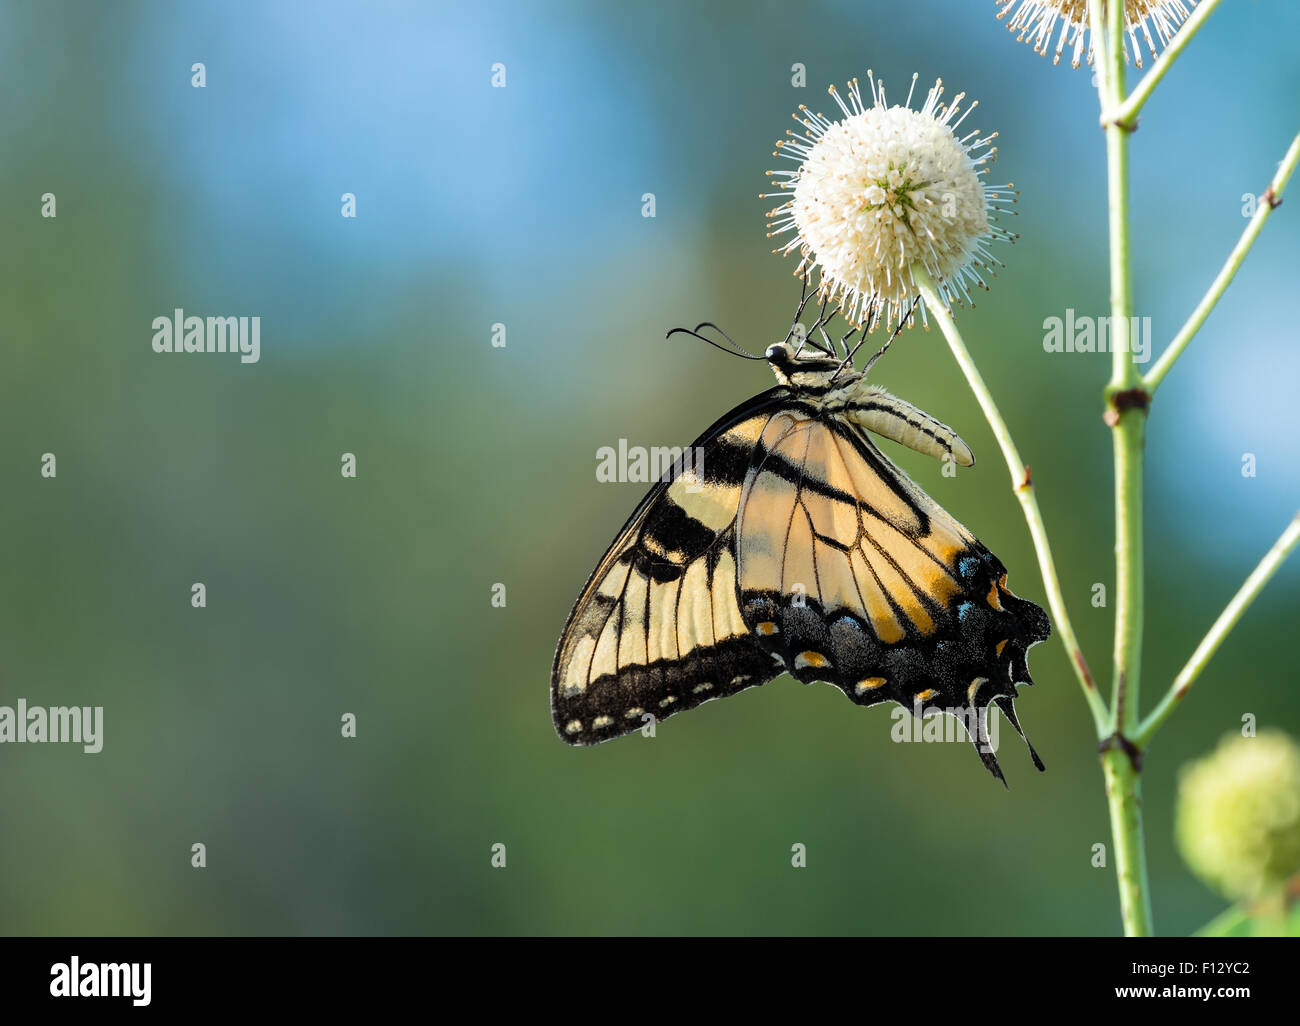 Eastern Tiger Swallowtail butterfly (Papilio glaucus) feeding on buttonbush flowers Stock Photo